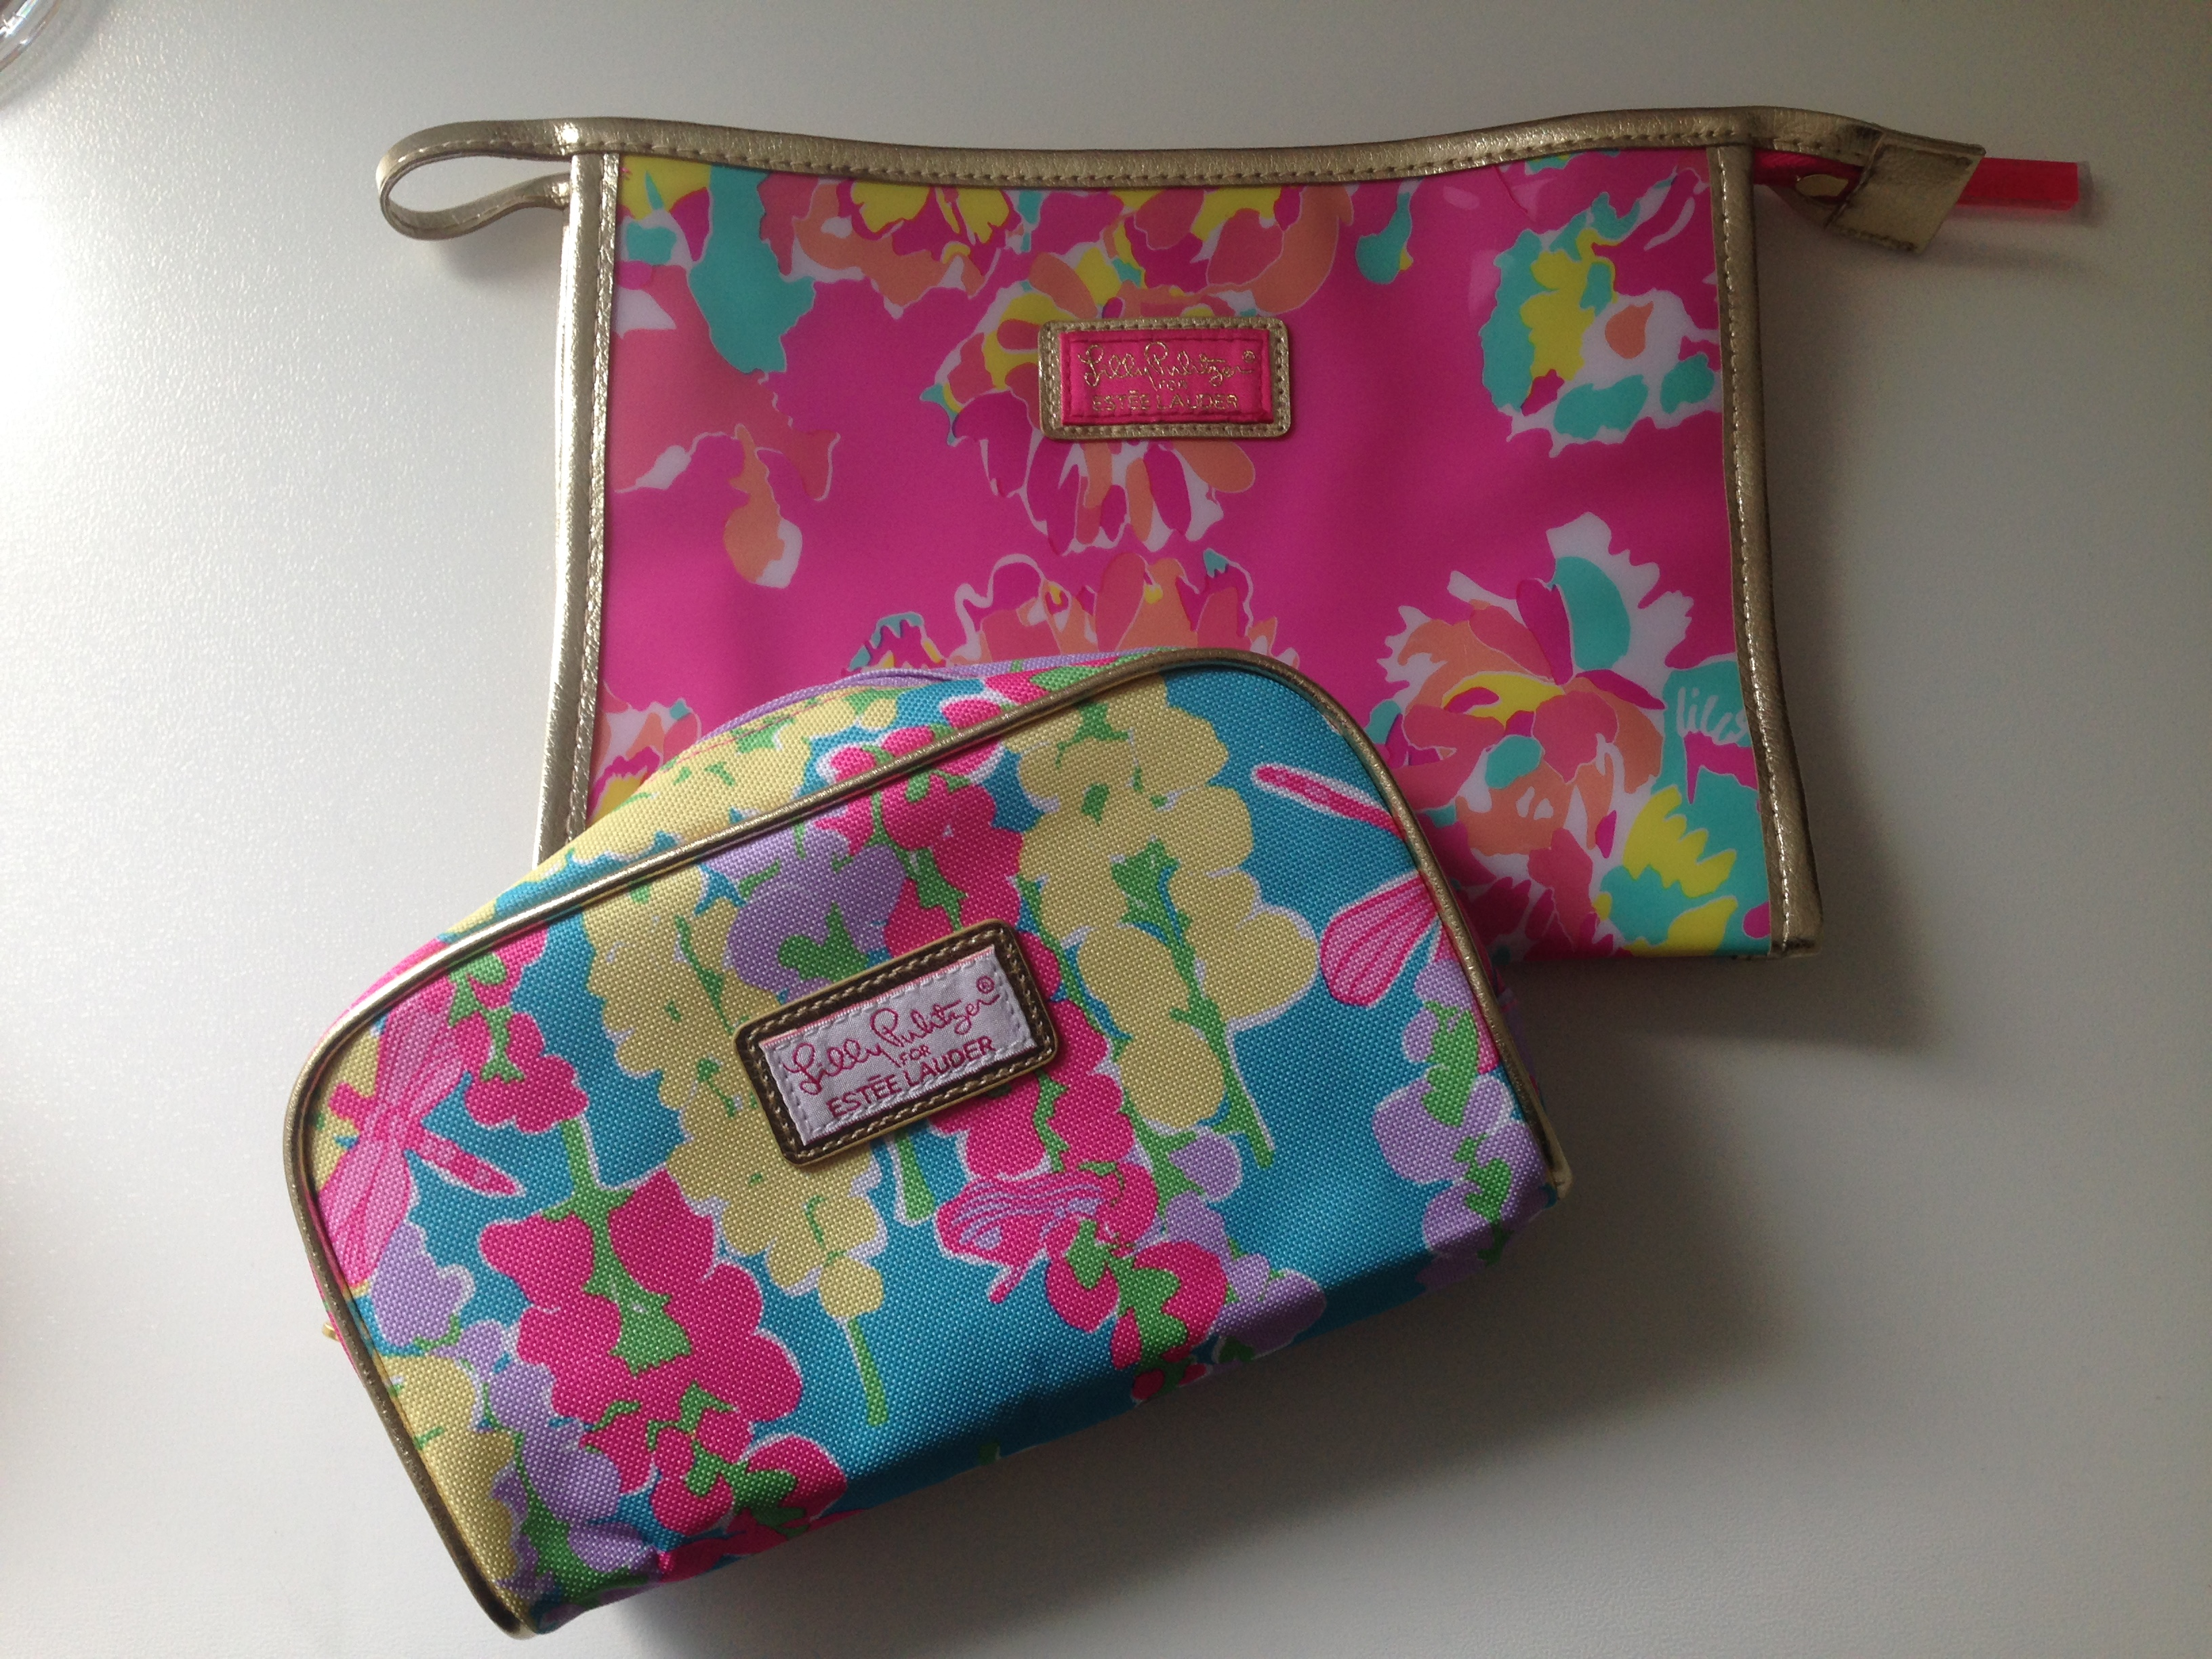 657ccc31c6e9 Lilly Pulitzer Cosmetic Bags Set · Trailer Thrash · Online Store ...